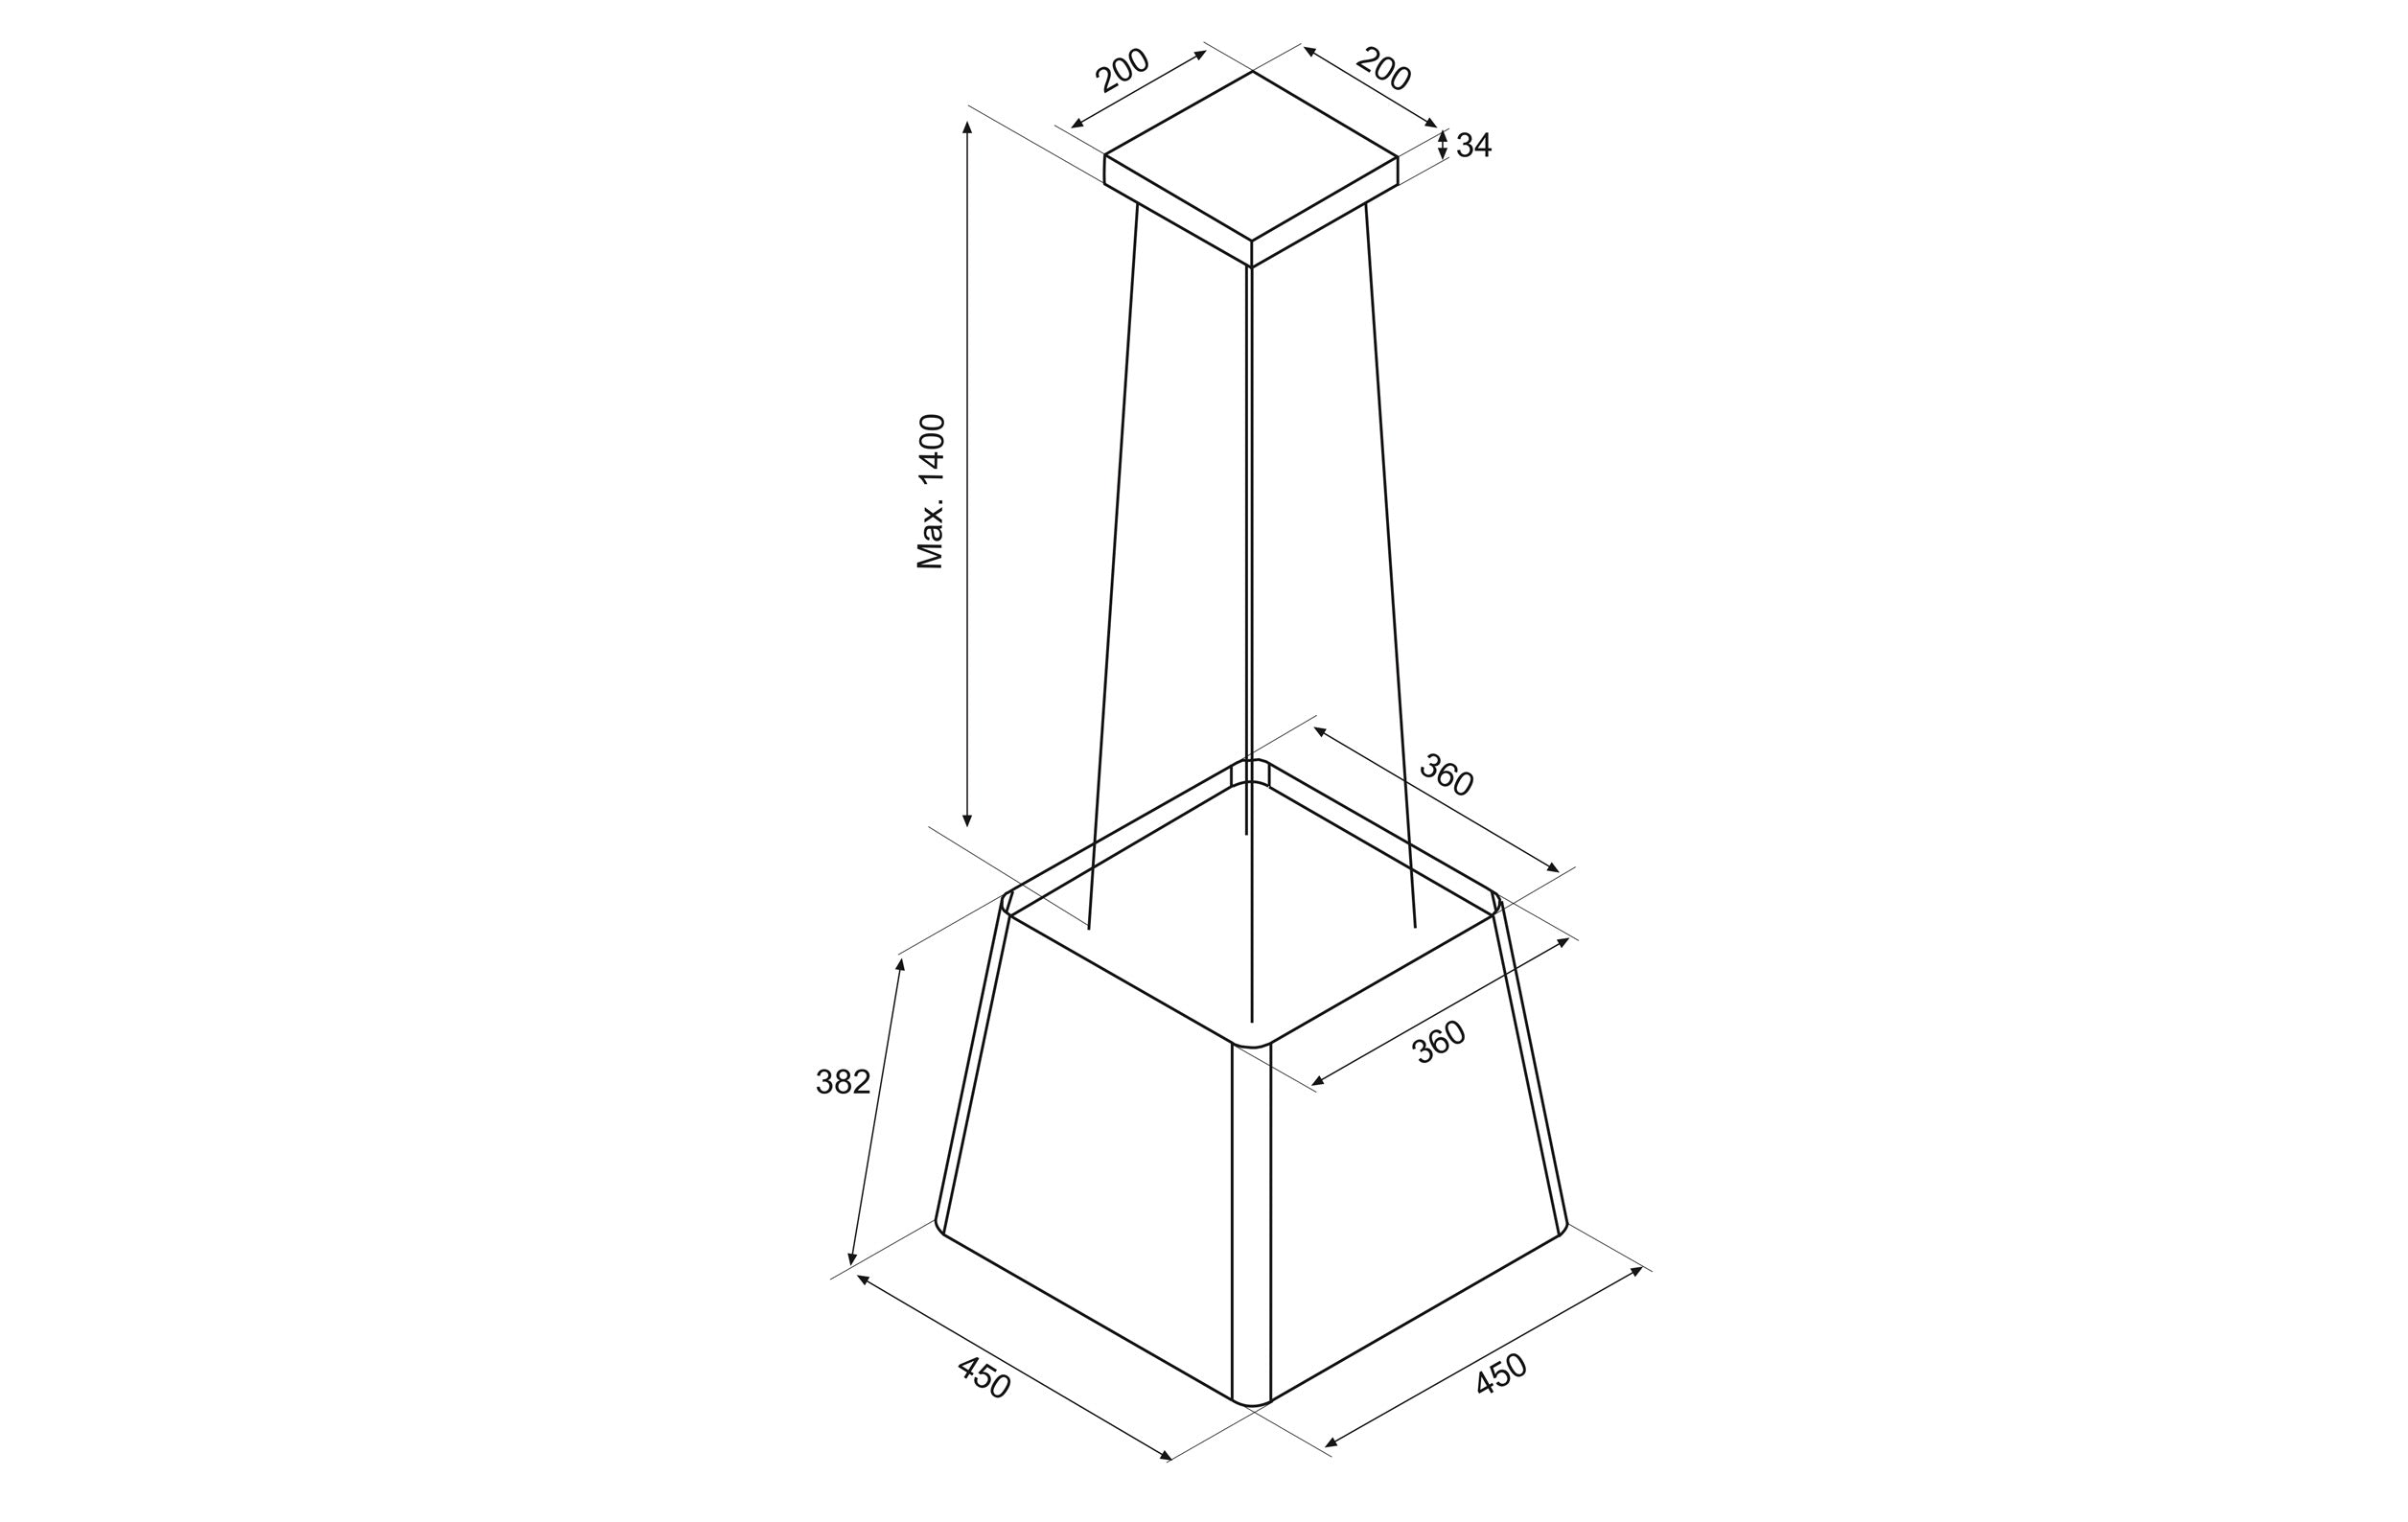 50cm Island Lamp Cooker Hood with Integra- Airforce F164 - St/Steel Technical Drawing